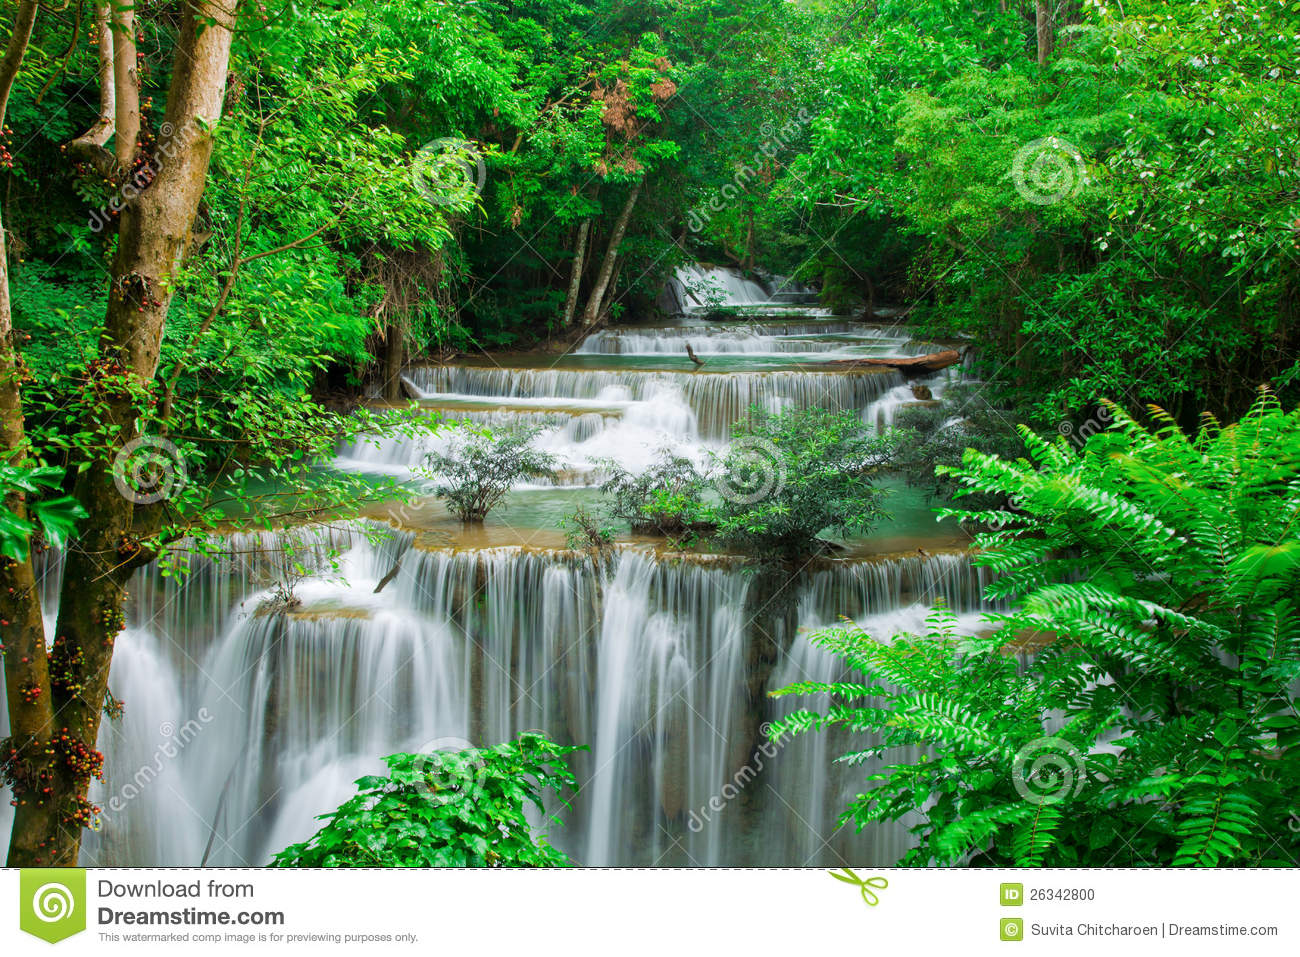 Waterfall In Fresh Green Forest Stock Photo - Image: 26342800